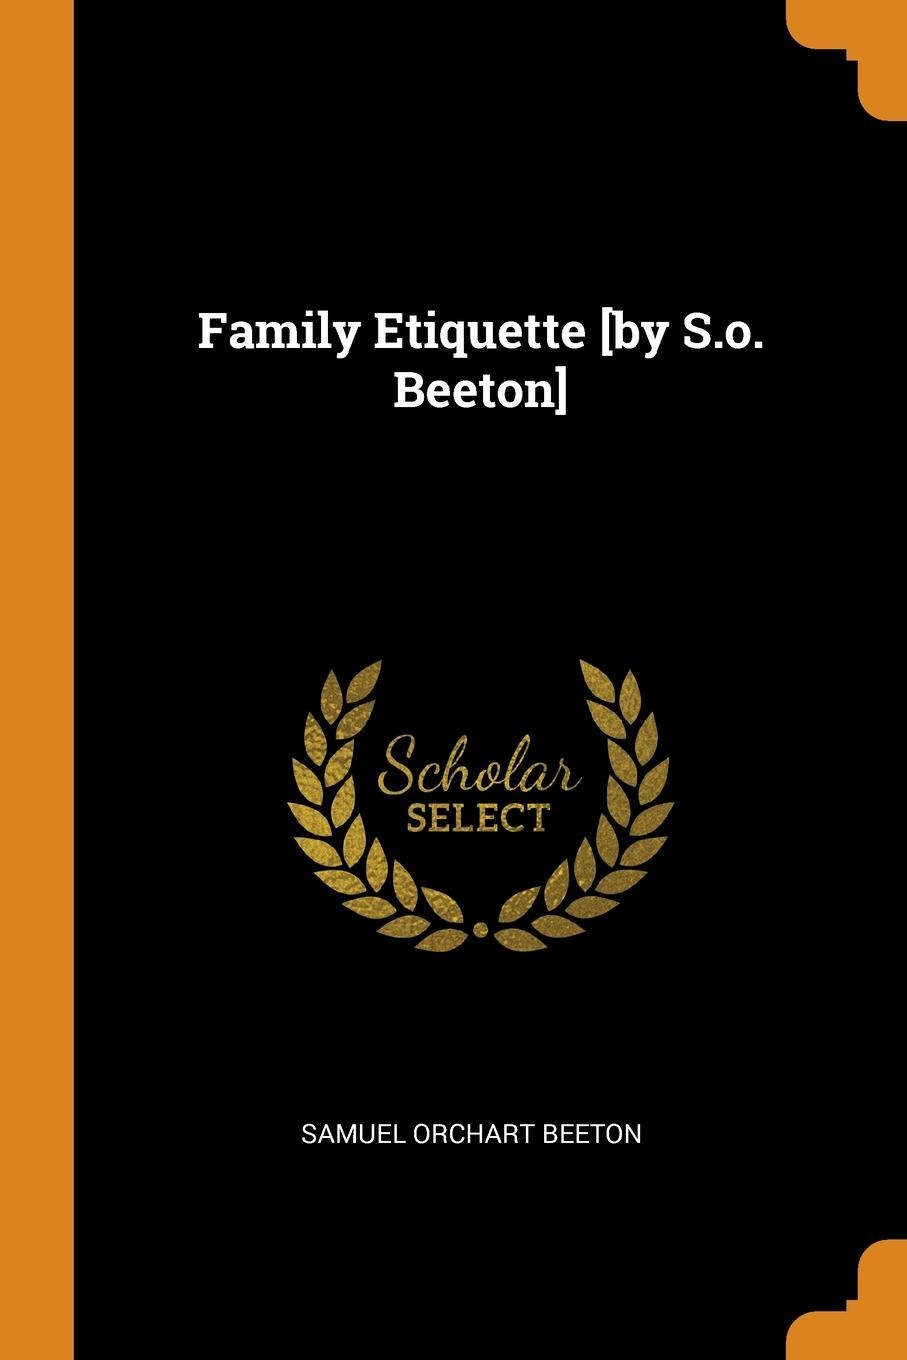 Samuel Orchart Beeton Family Etiquette .by S.o. Beeton.